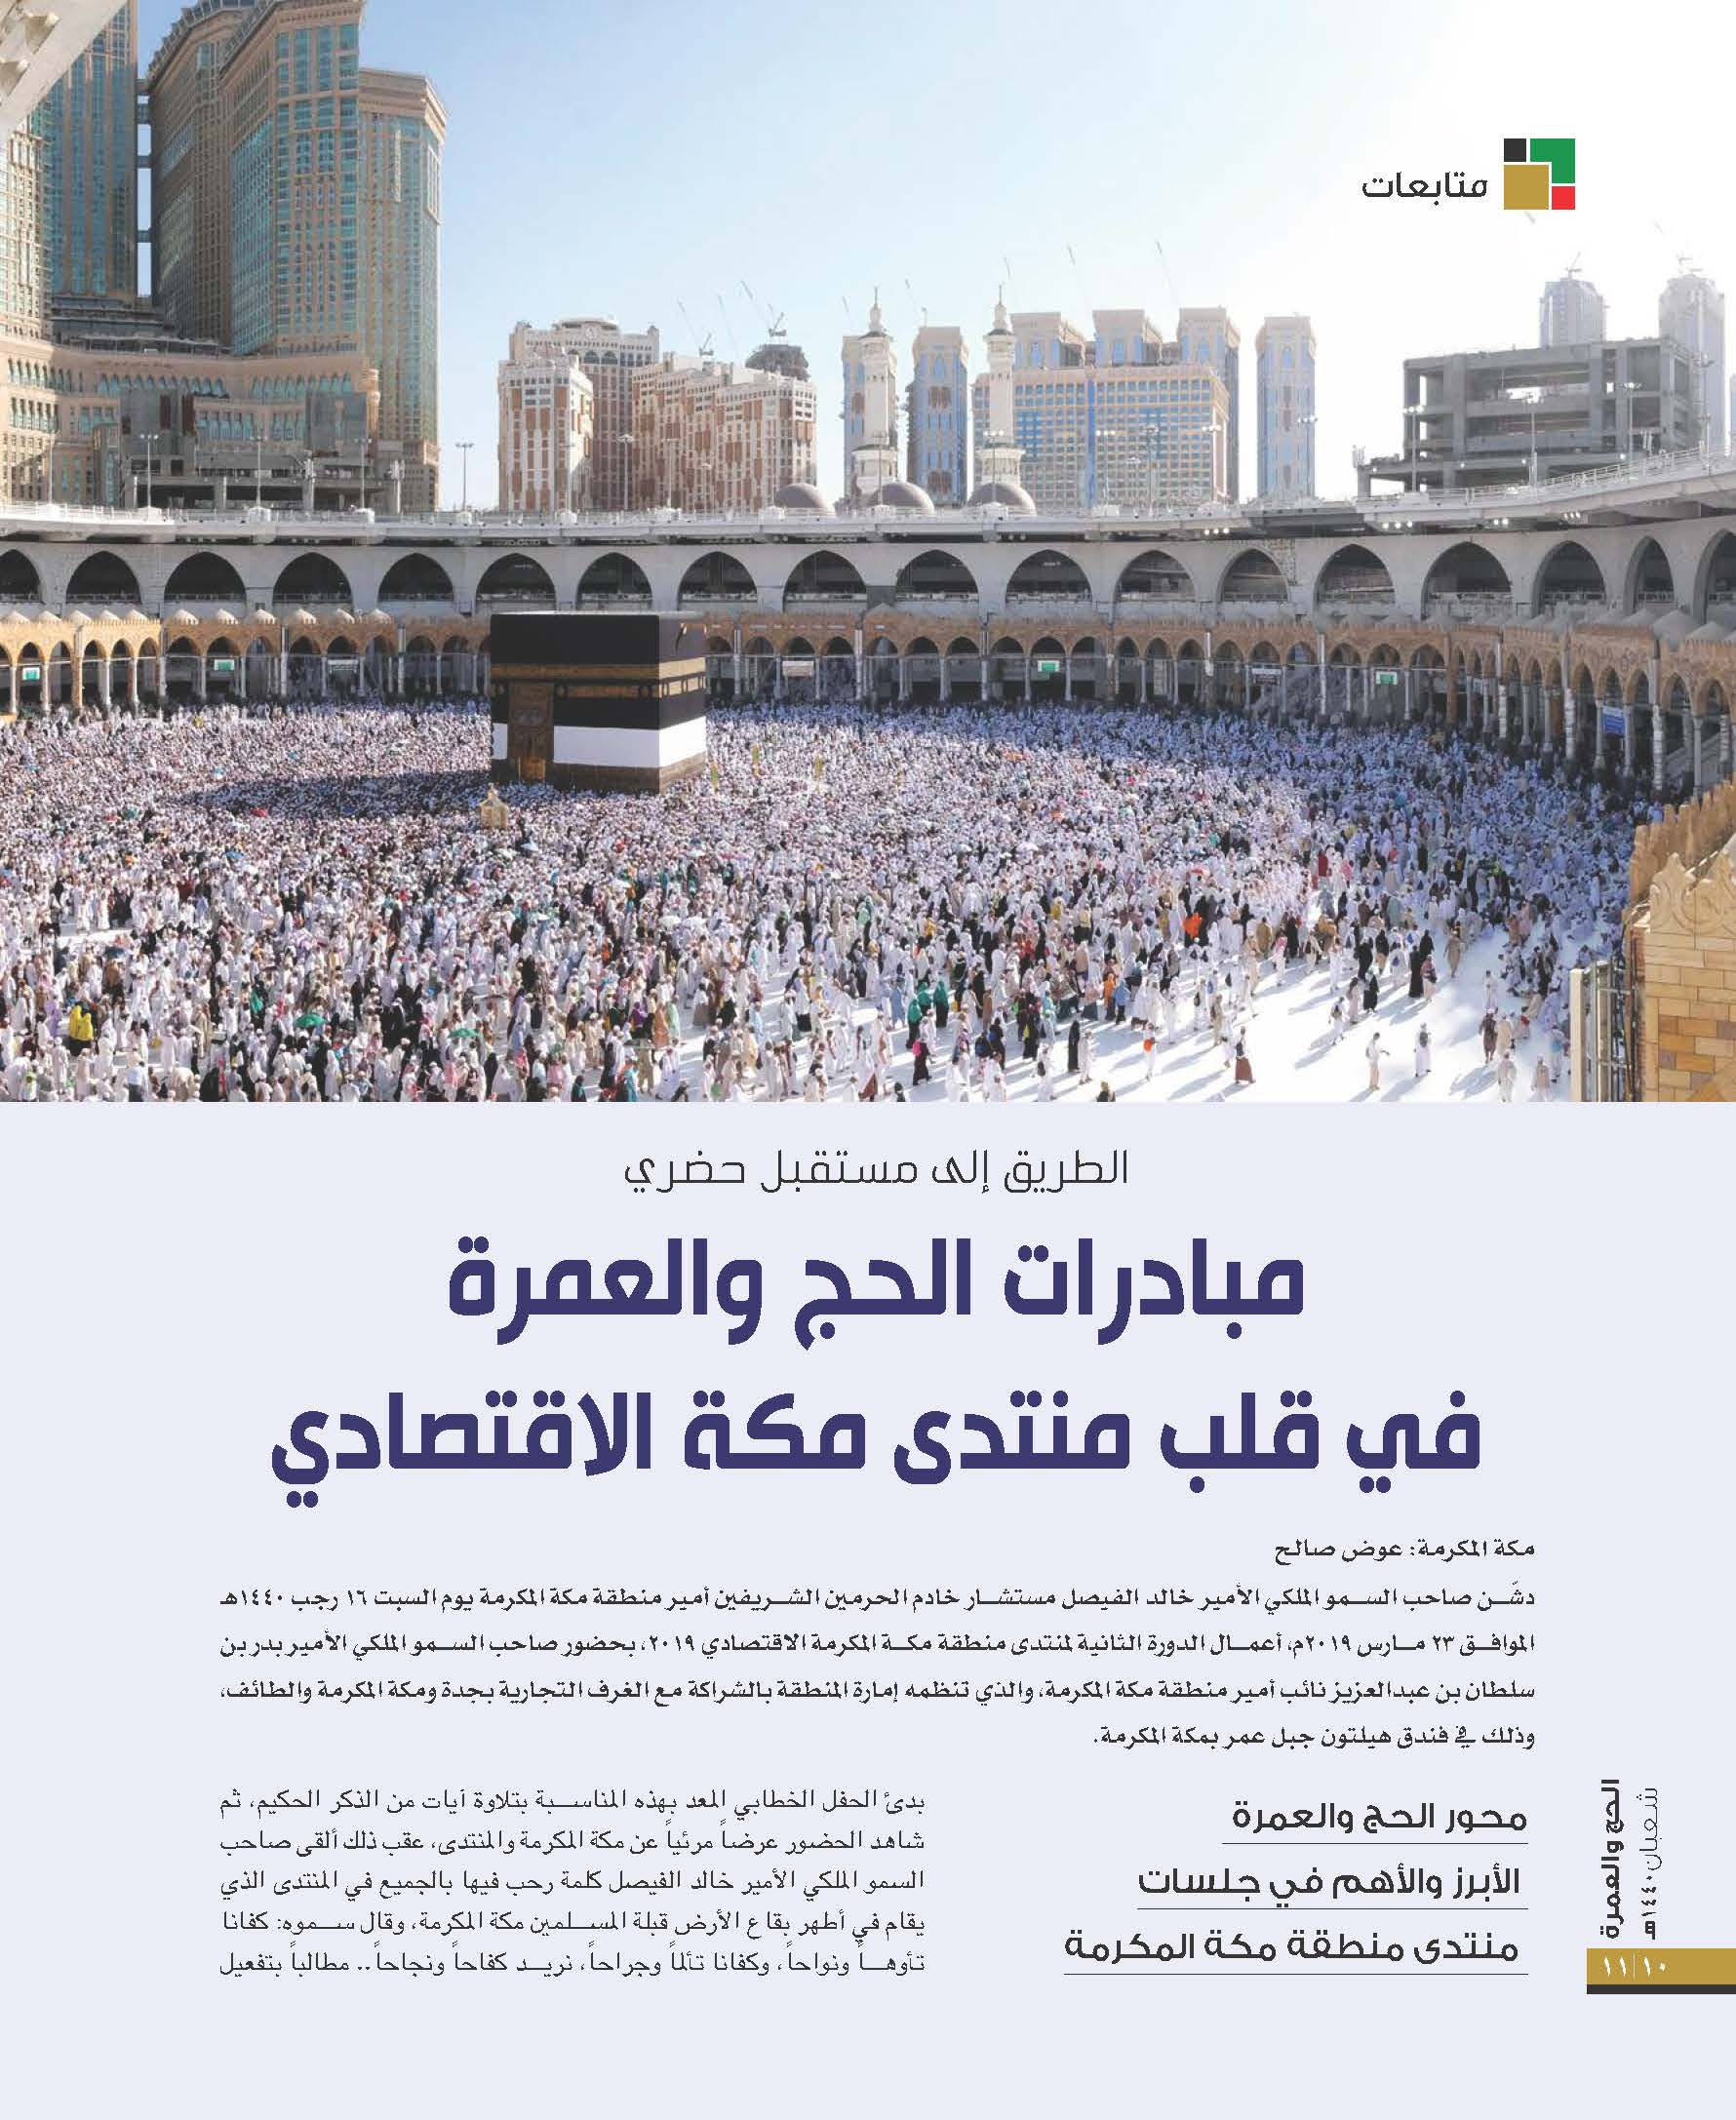 Initiatives of Hajj and Umrah at the heart of the Mecca Economic Forum